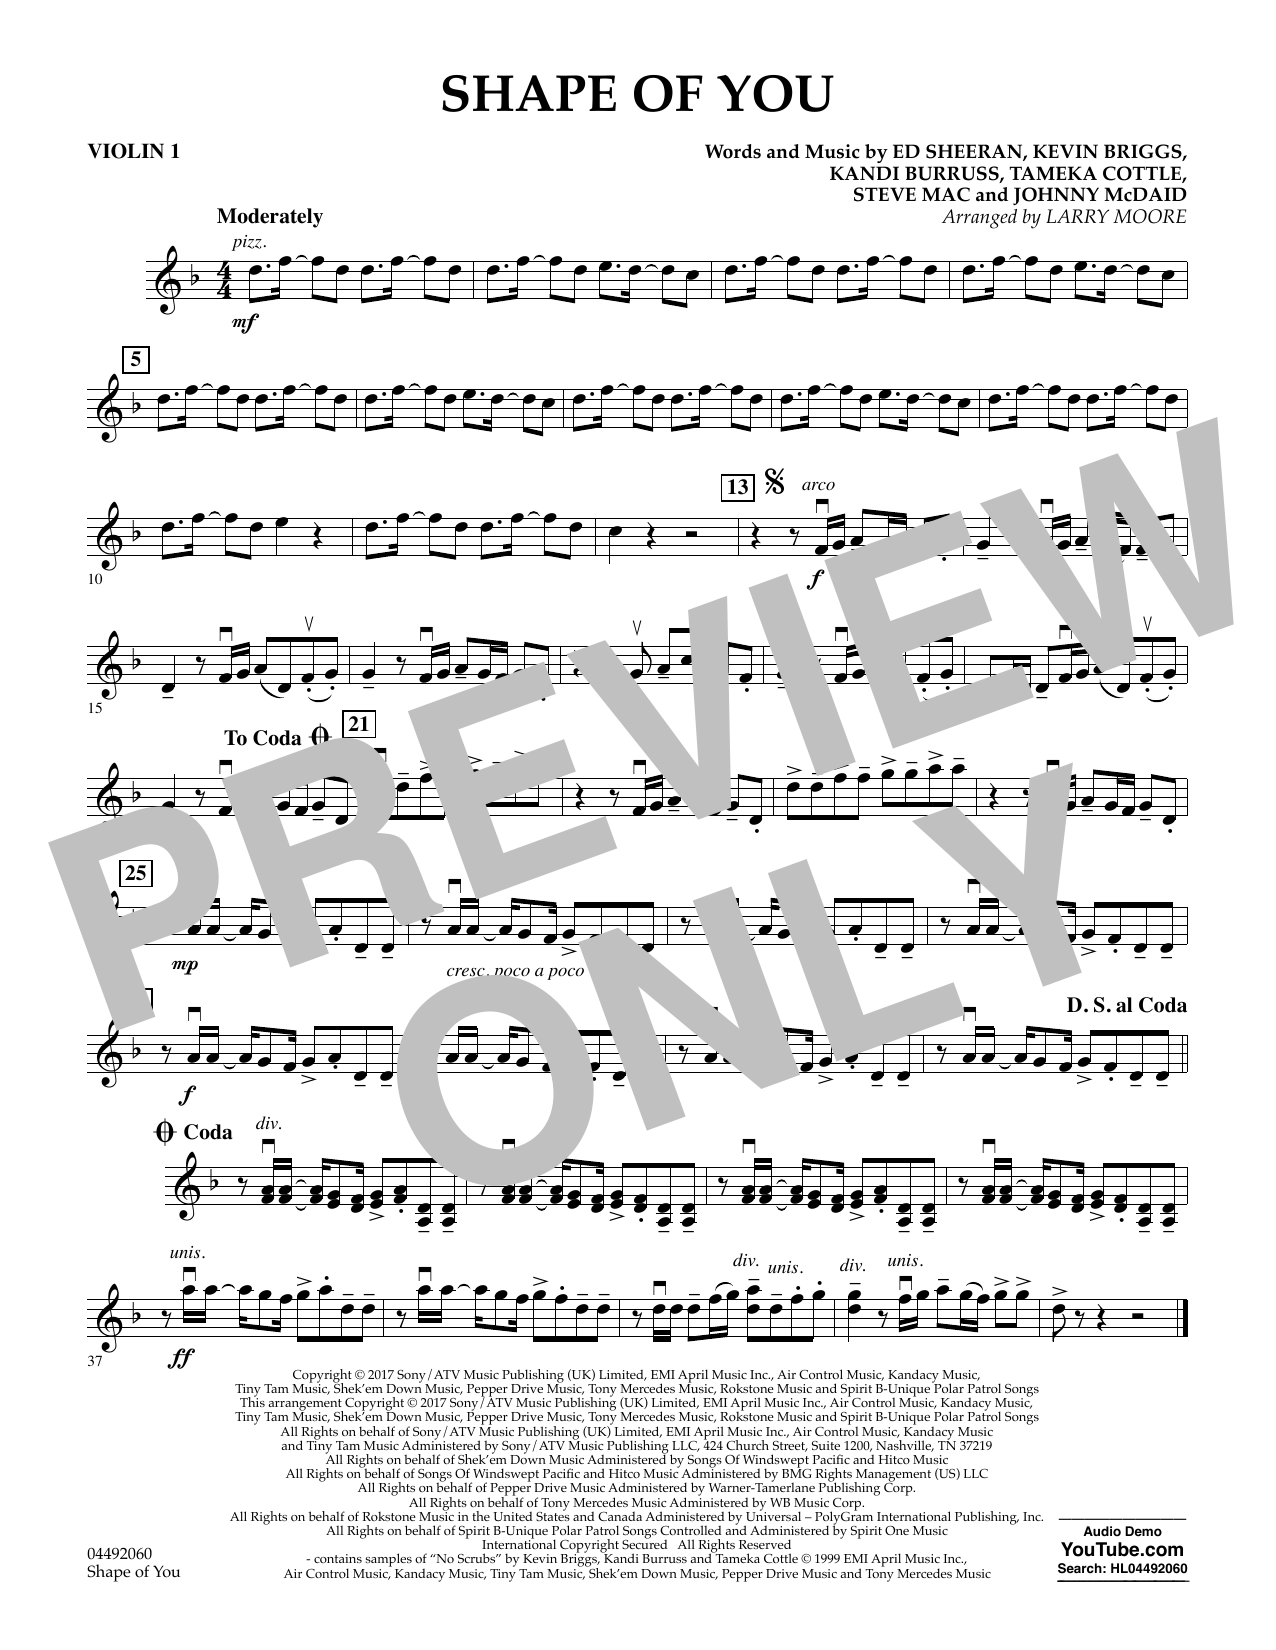 Larry Moore Shape of You - Violin 1 sheet music notes and chords. Download Printable PDF.